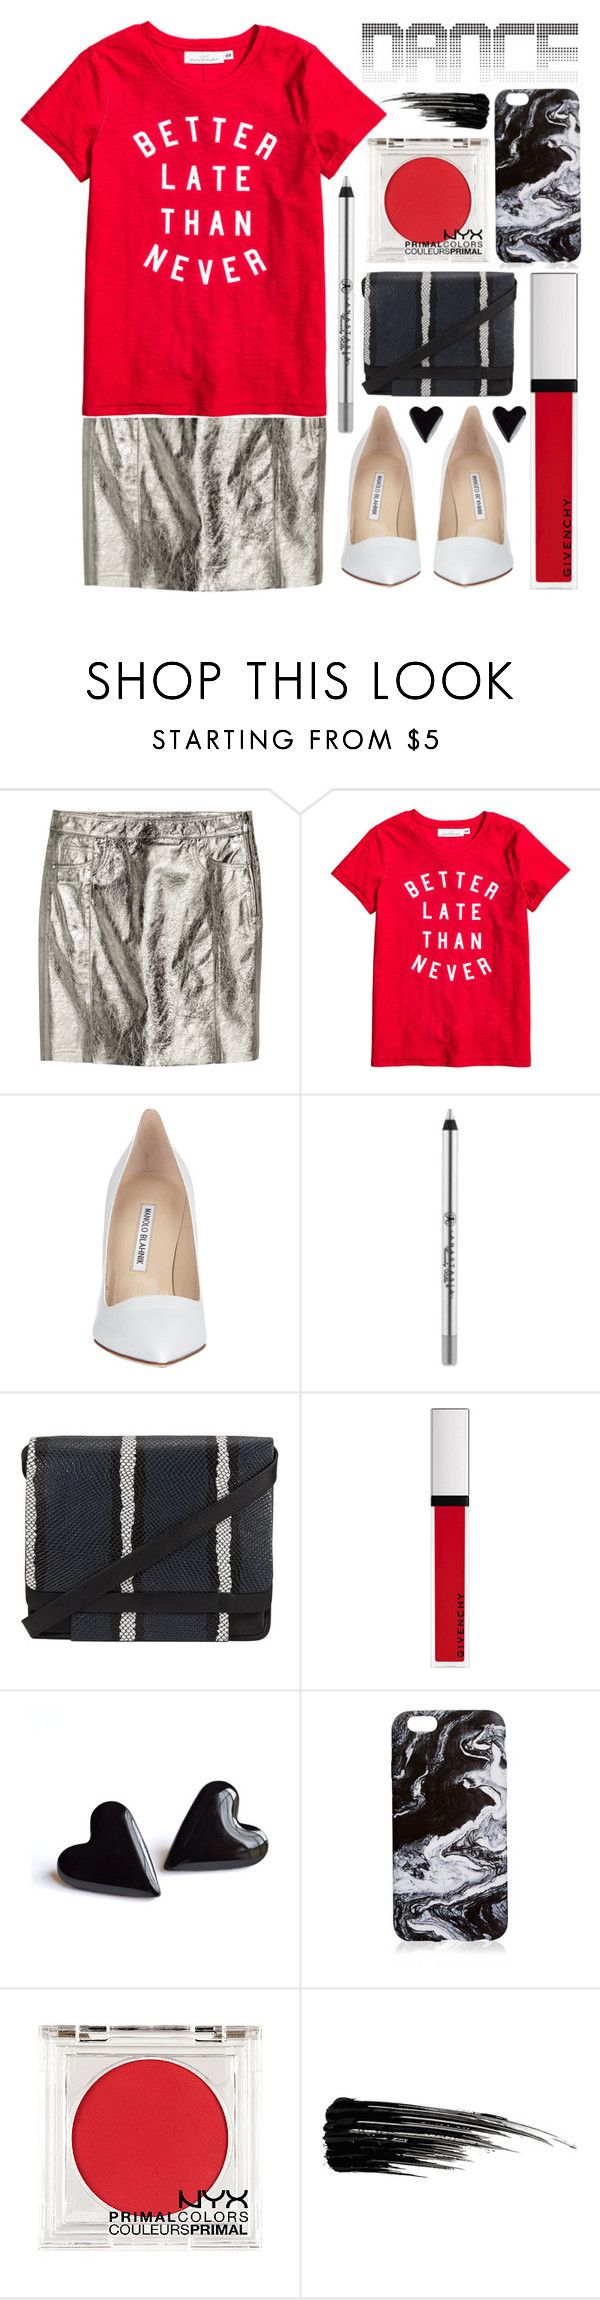 """""""getting late"""" by foundlostme ❤ liked on Polyvore featuring H&M, Manolo Blahnik, Anastasia Beverly Hills, Kin by John Lewis, Givenchy, NYX, Urban Decay and danceparty"""